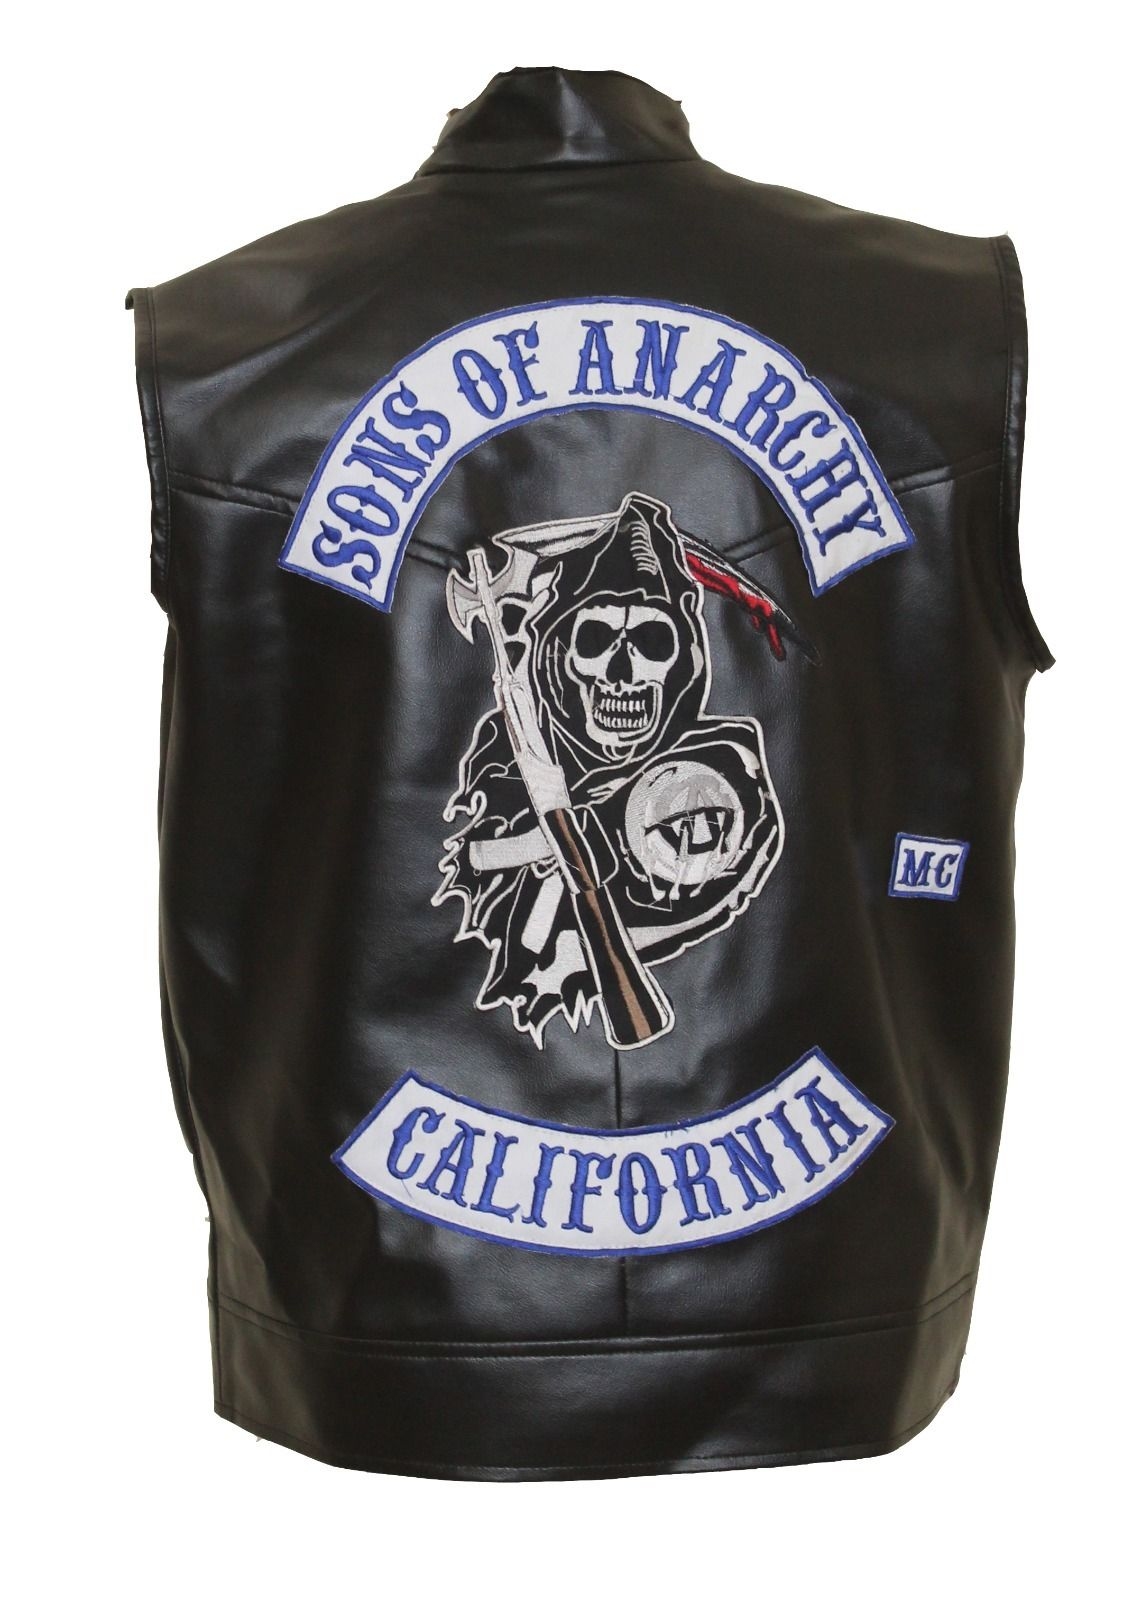 Biker Vest Patches >> Sons Of Anarchy Jax Teller Leather Vest With Patches - Filmstaroutfits.com